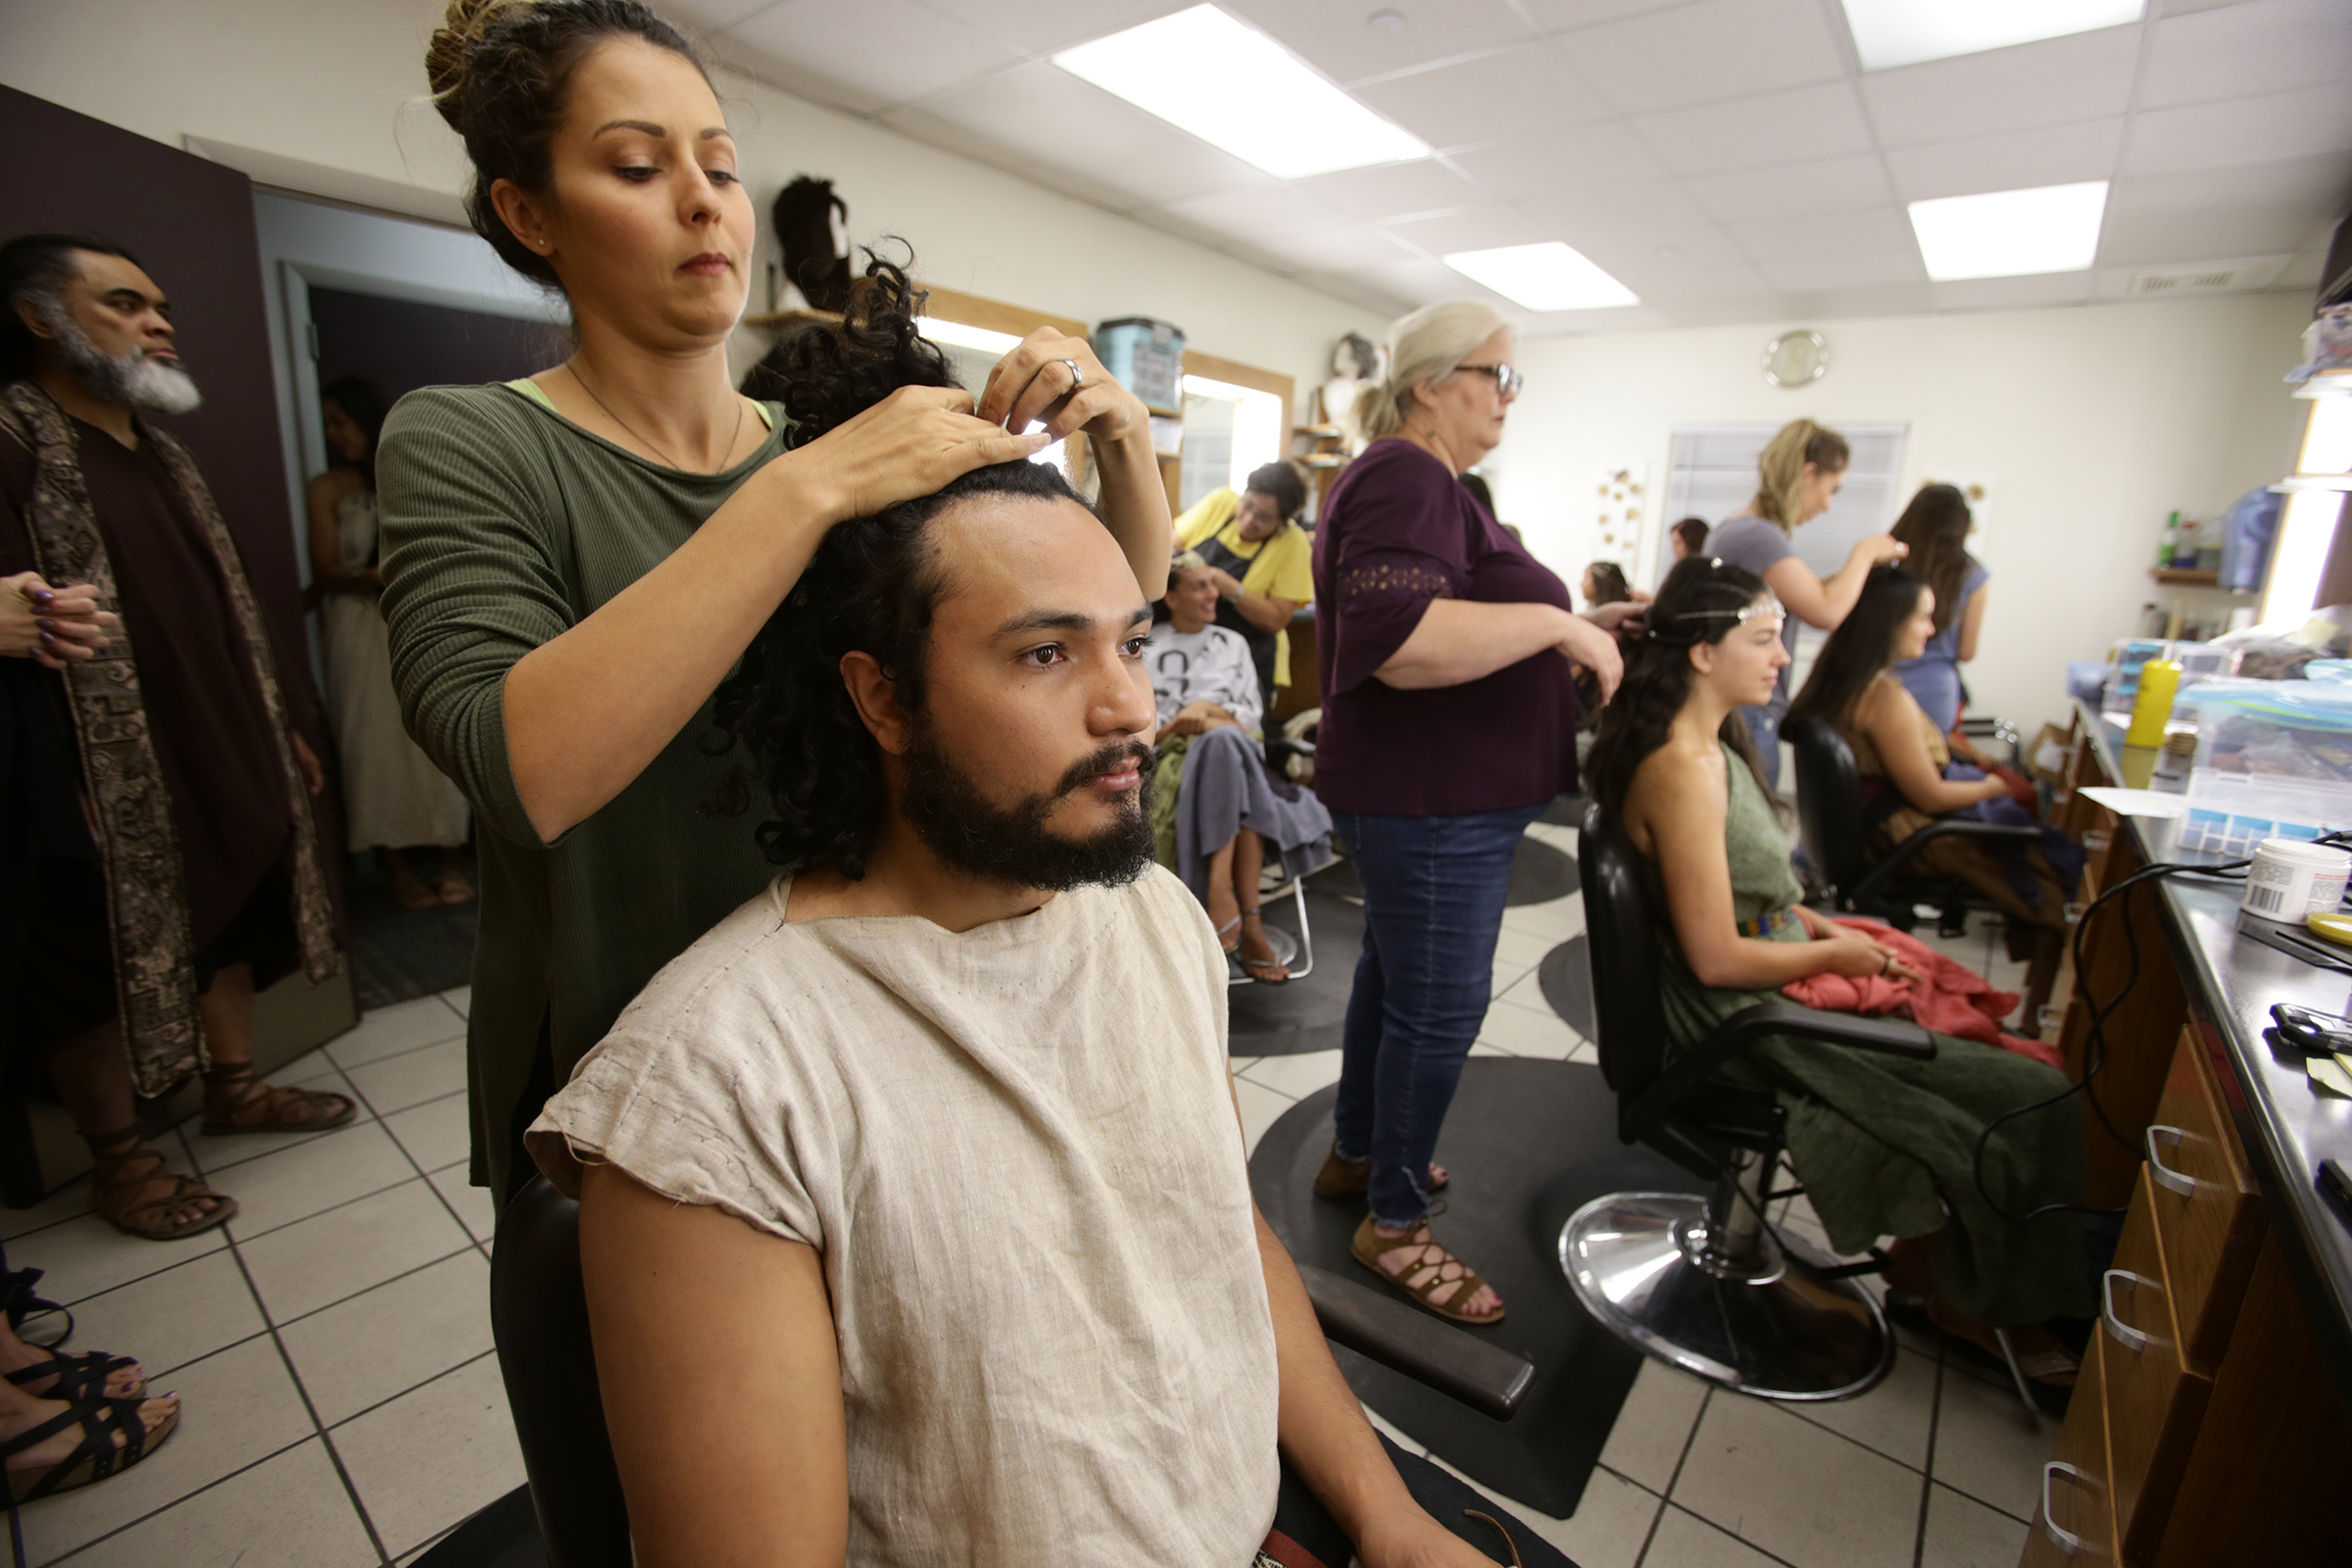 Tiffany Dickens, Key Hair, works with Daryn Vallejo, who plays King Noah's guard as work on production of the Book of Mormon video series continues in Provo, Utah, at the Motion Picture Studio on Tuesday, Sept. 3, 2019.